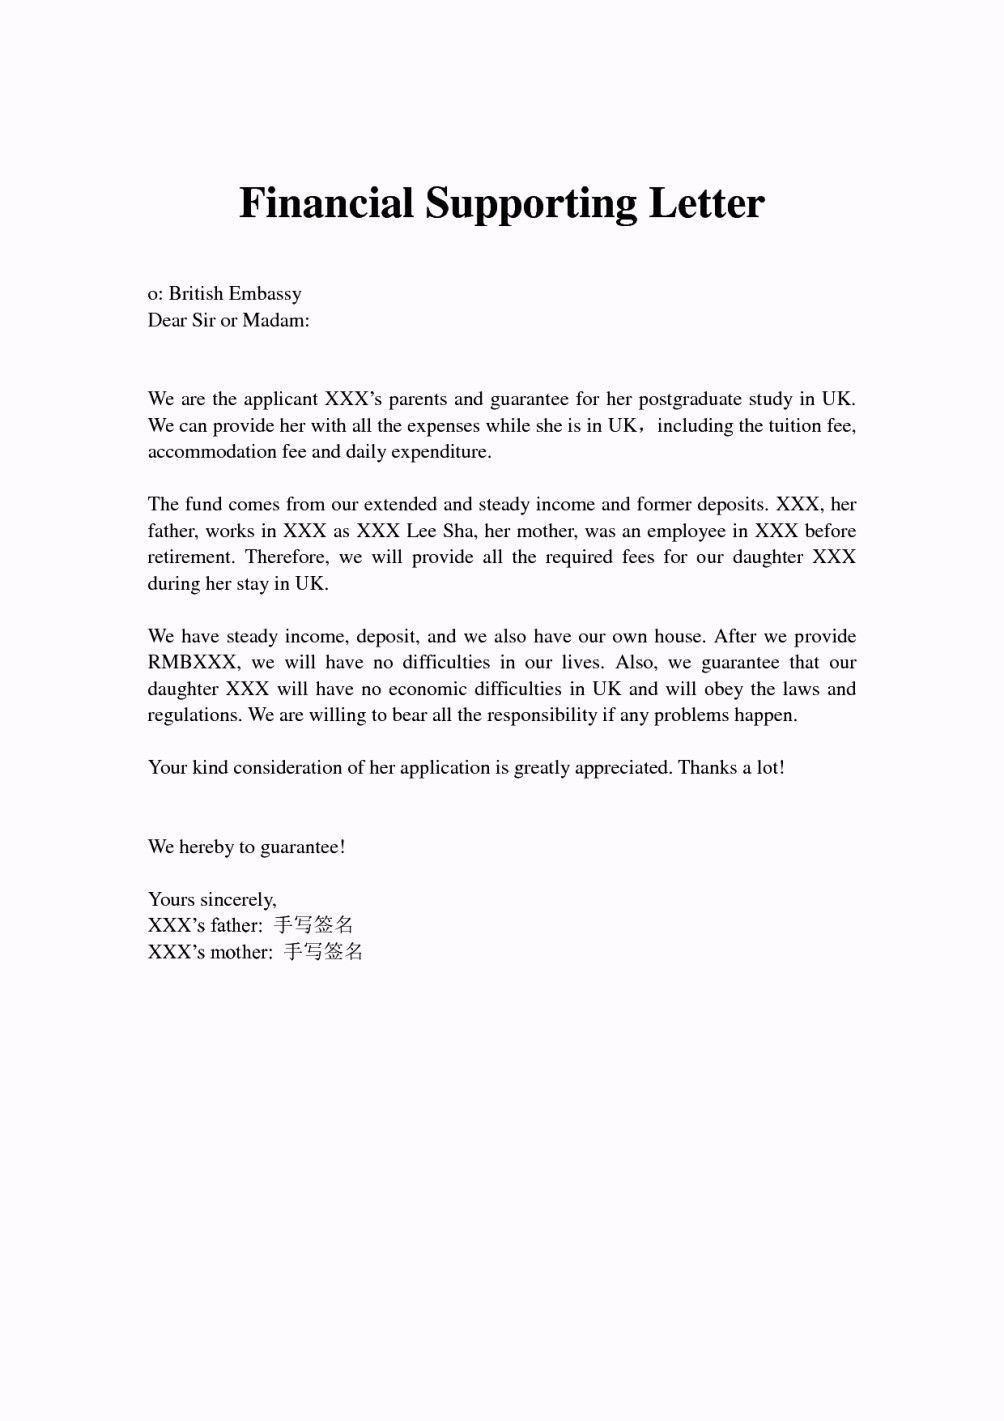 Financial Support Letter From Parents  letter  Pinterest